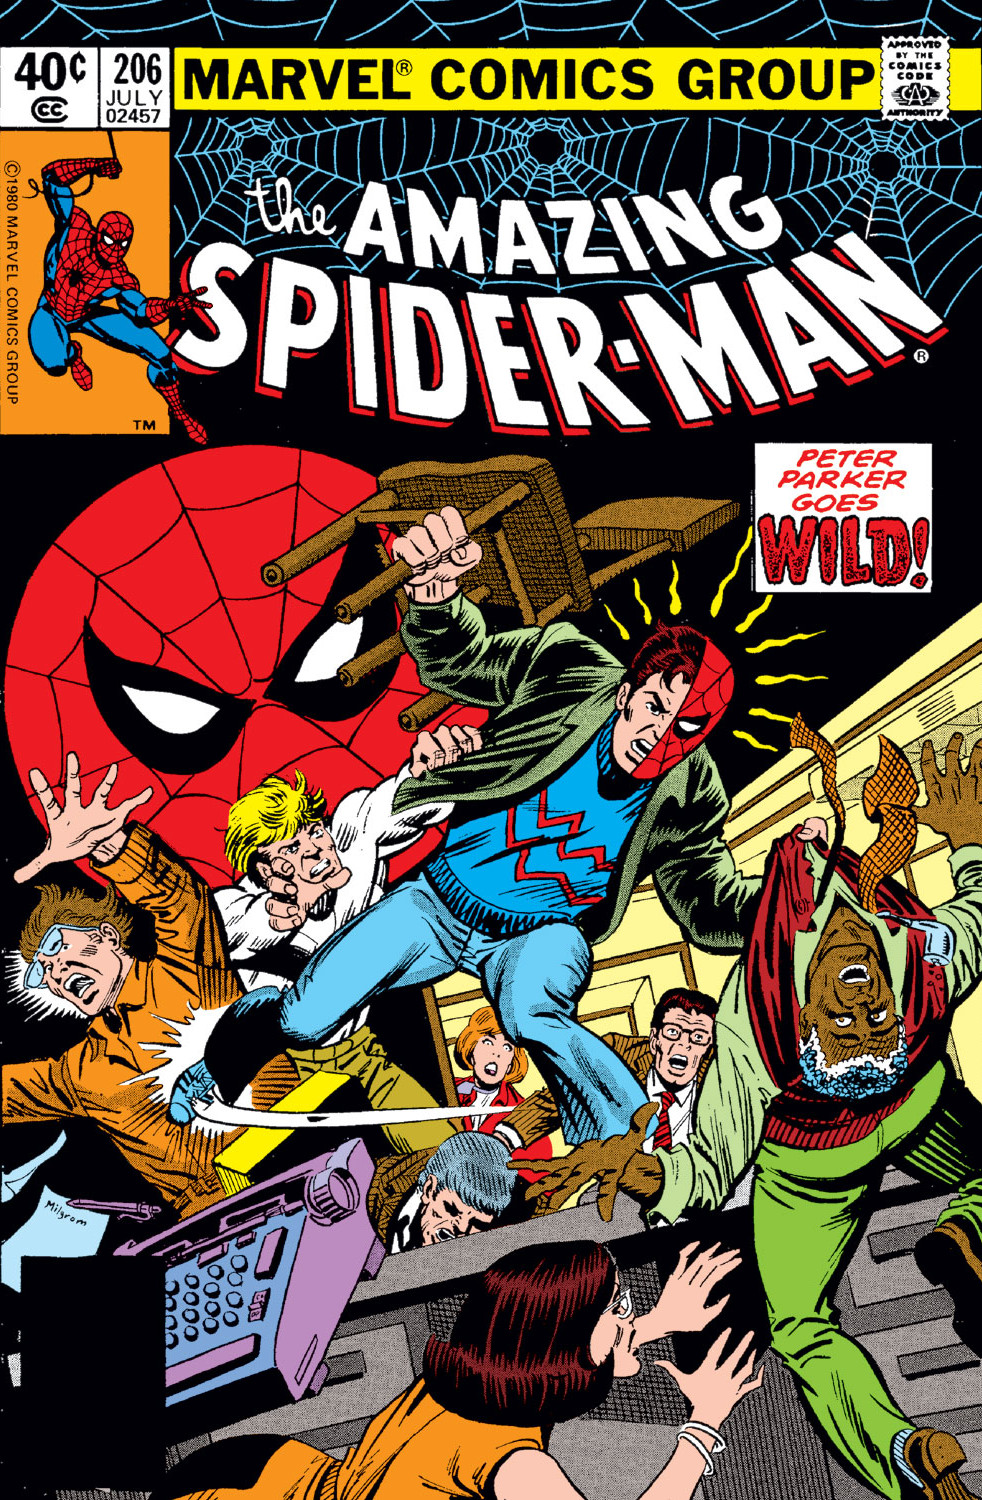 Amazing Spider-Man Vol 1 206